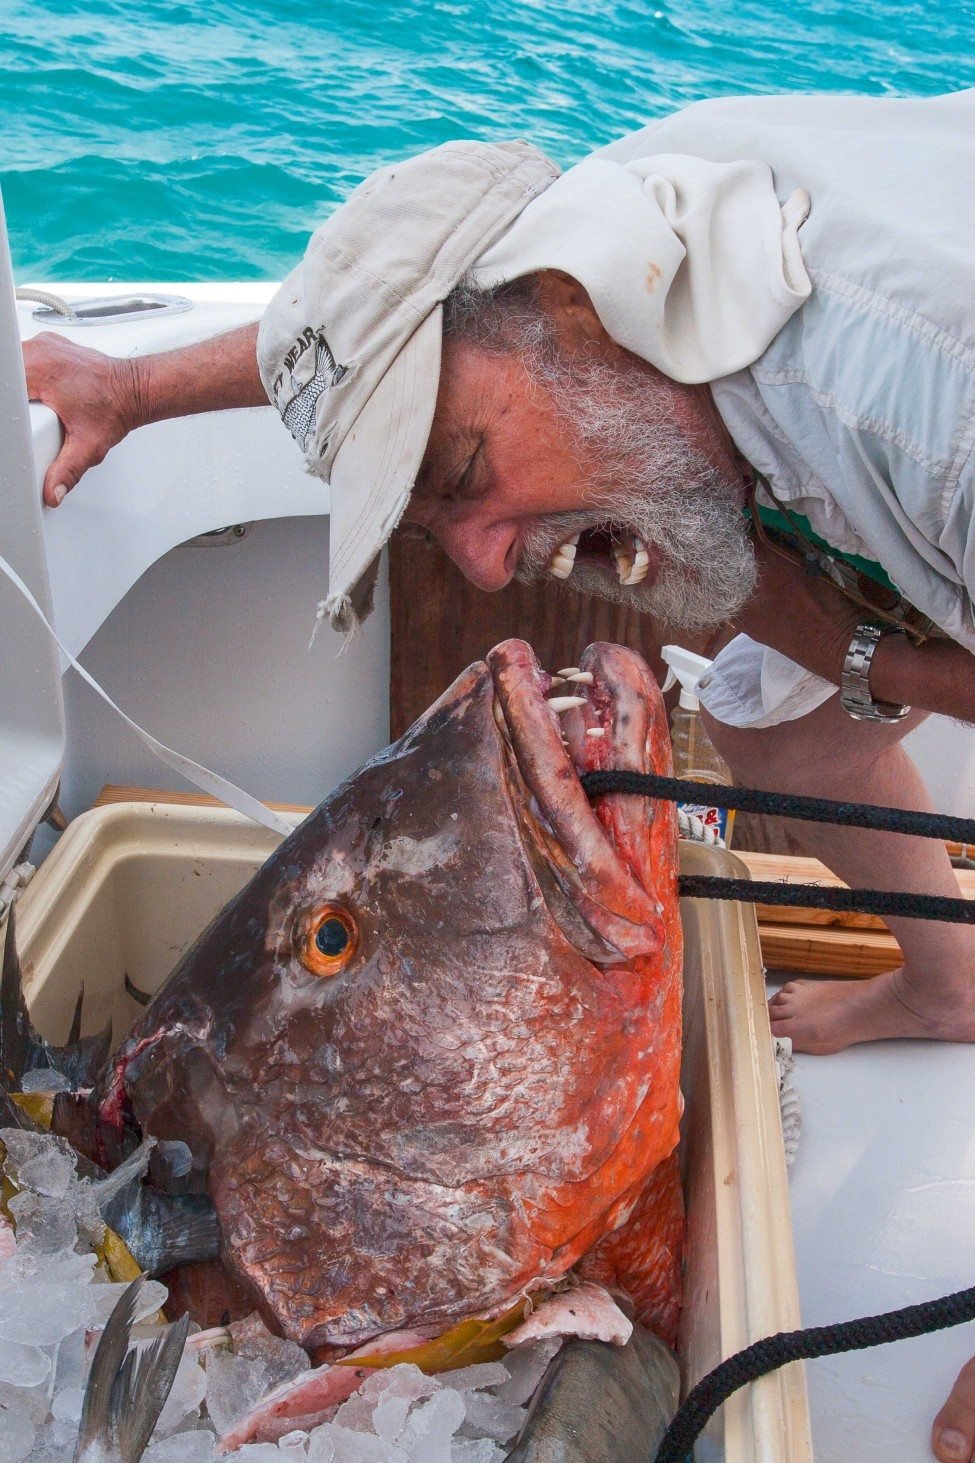 Samuel 'Doc' Gruber, the founder of the Shark Lab, gets up close with a snapper.<br /> Photo by Matthew Potenski